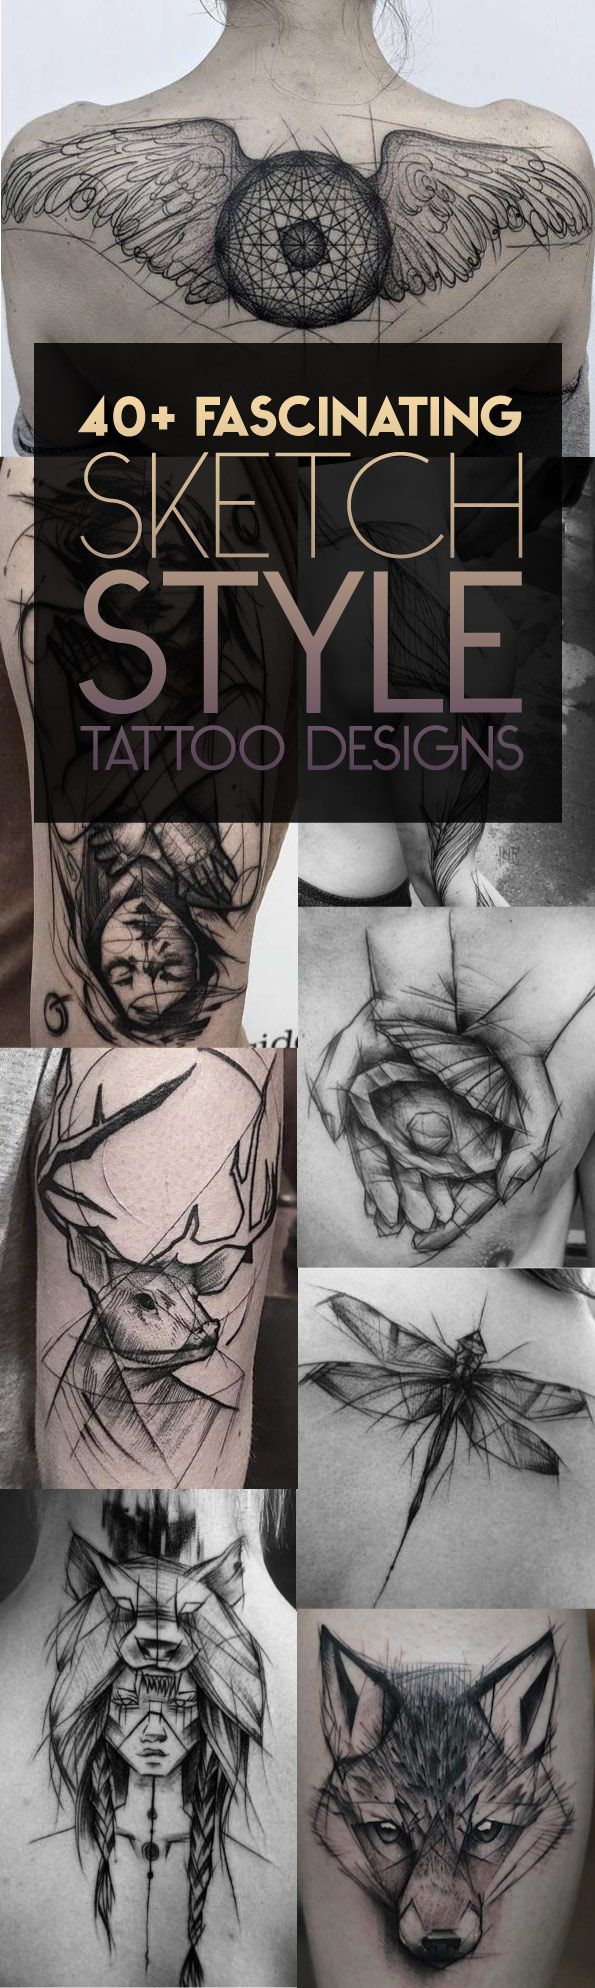 40 Fascinating Sketch Style Tattoos | TattooBlend